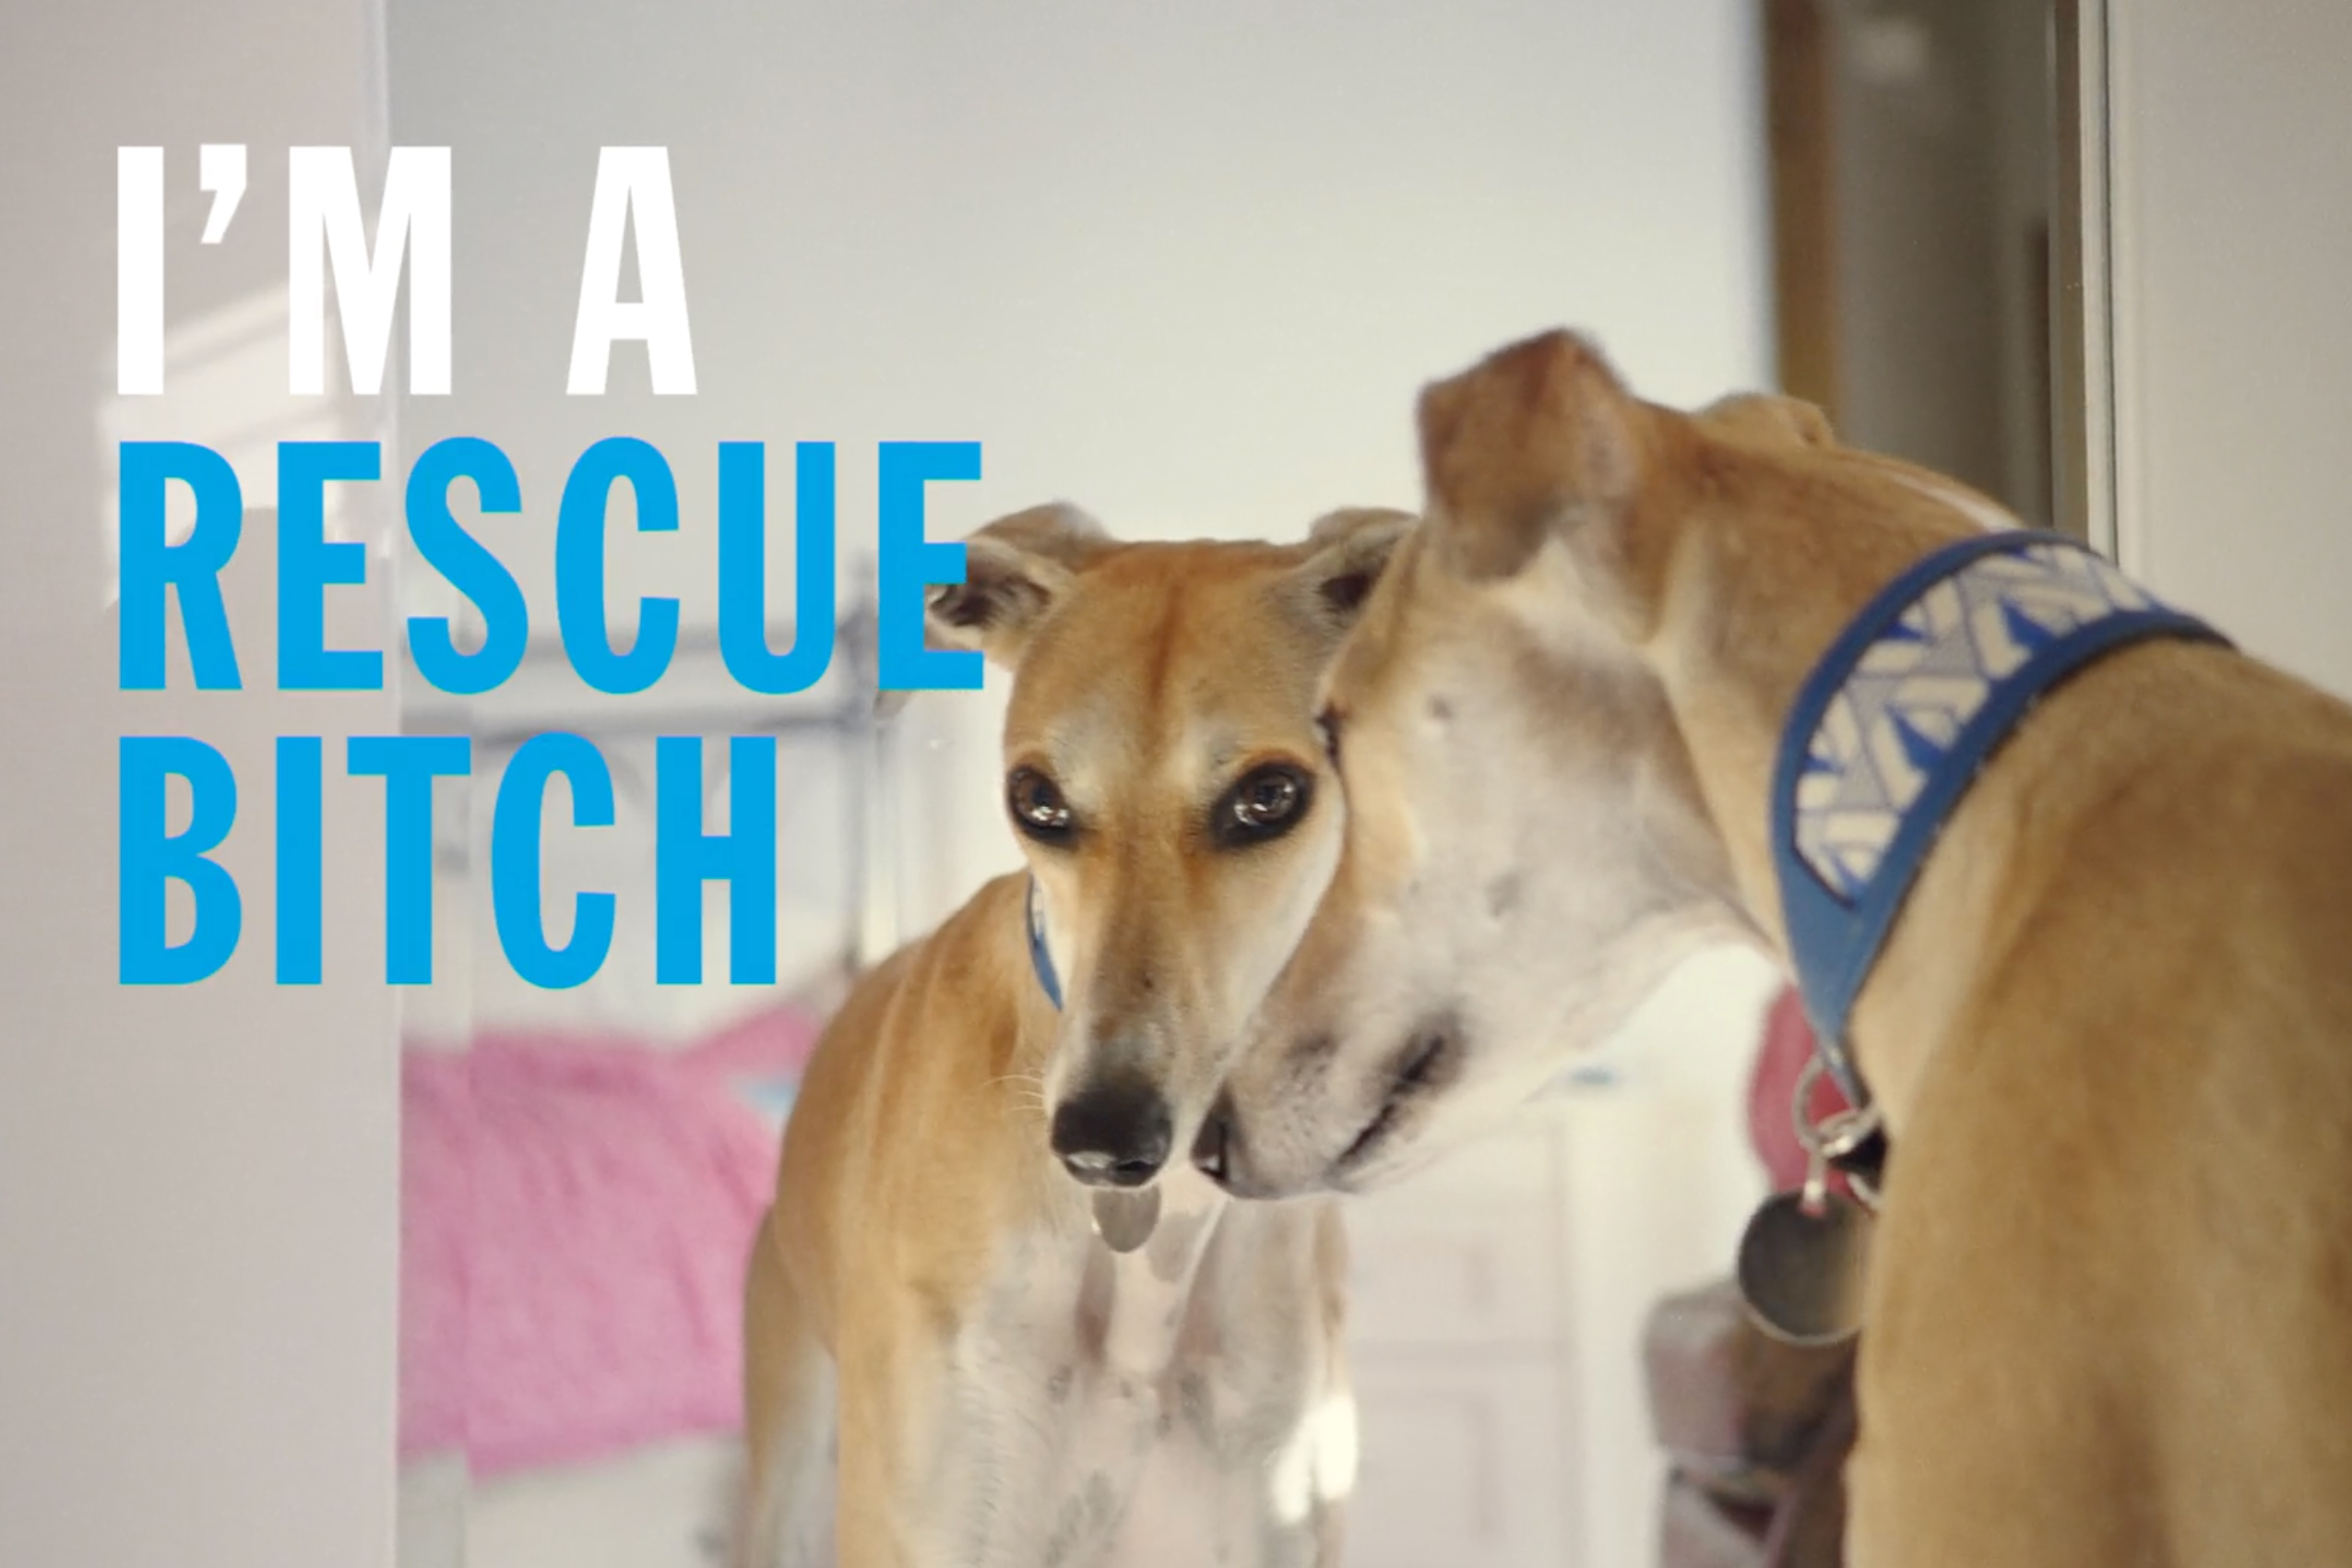 Battersea: Rescue is our favorite breed